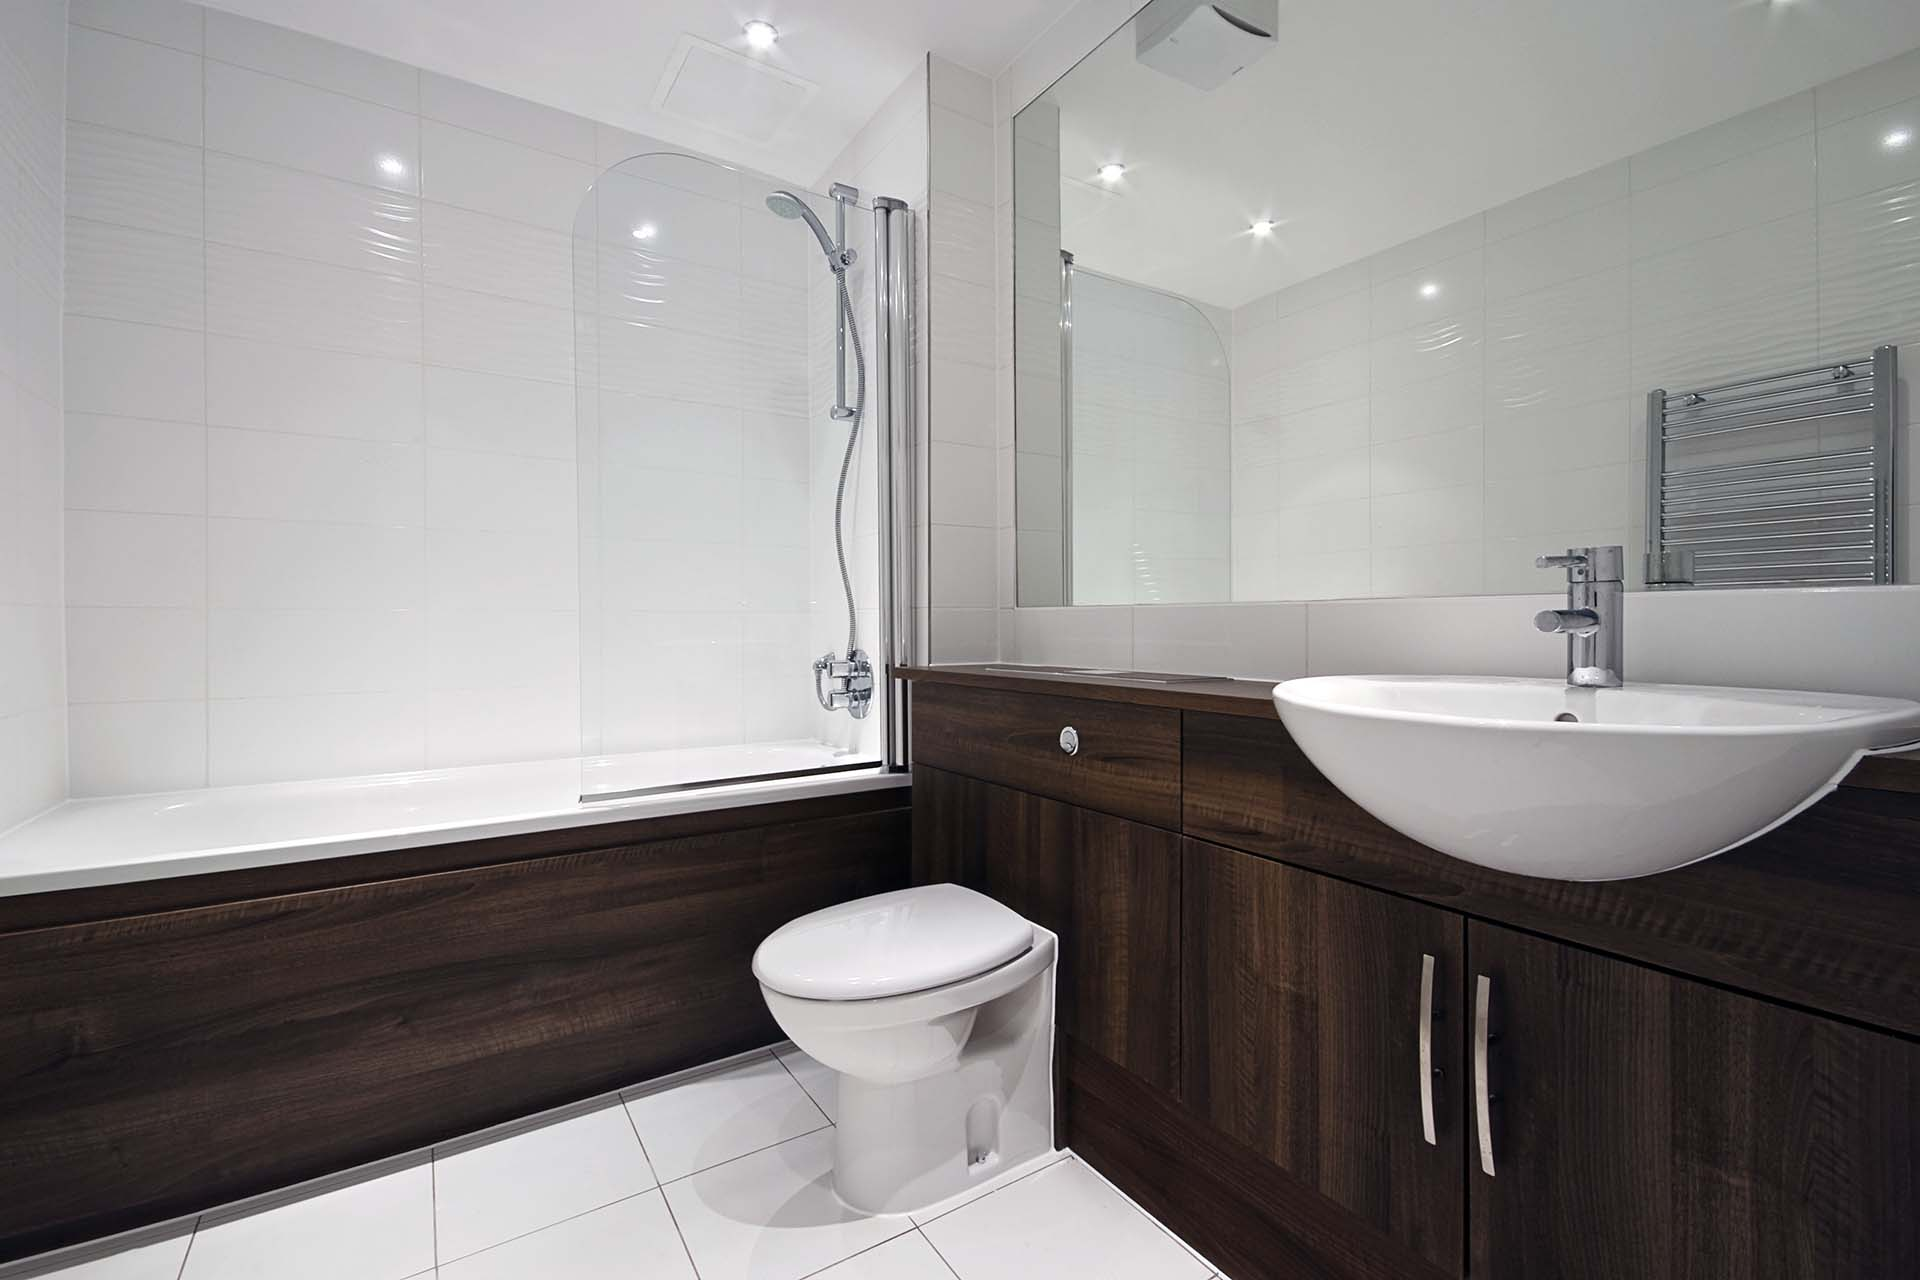 Custom World Bedrooms Bathroom Furniture - Fully fitted bathroom units to match the style of your bathroom